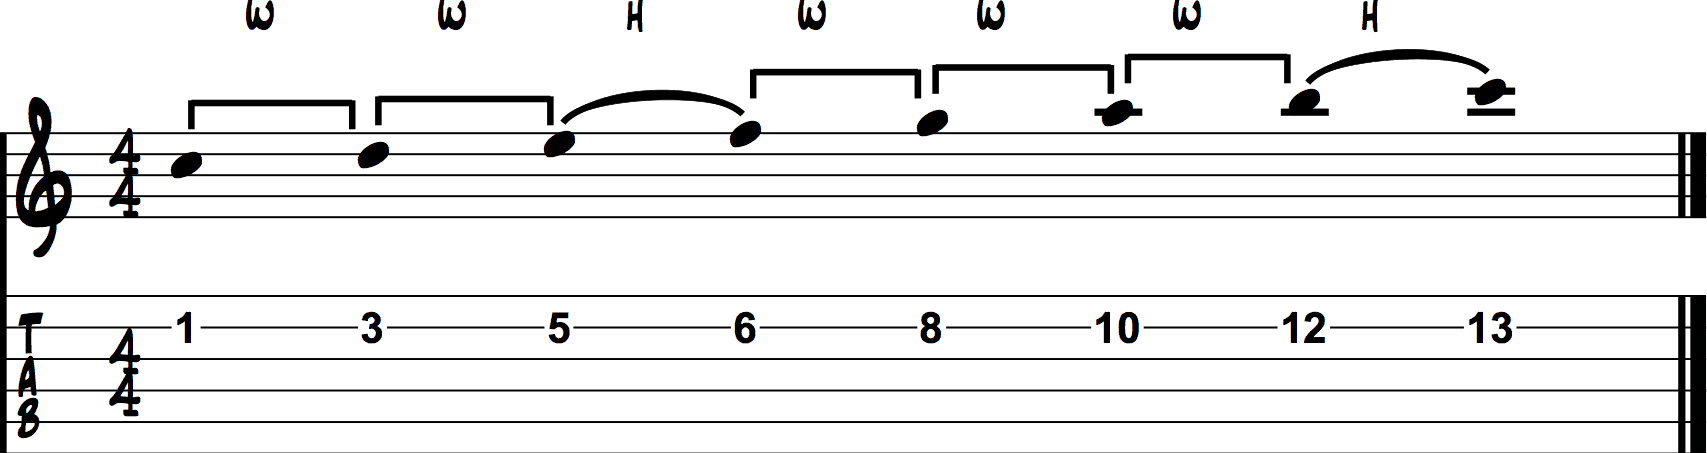 Guitar major scale example 3